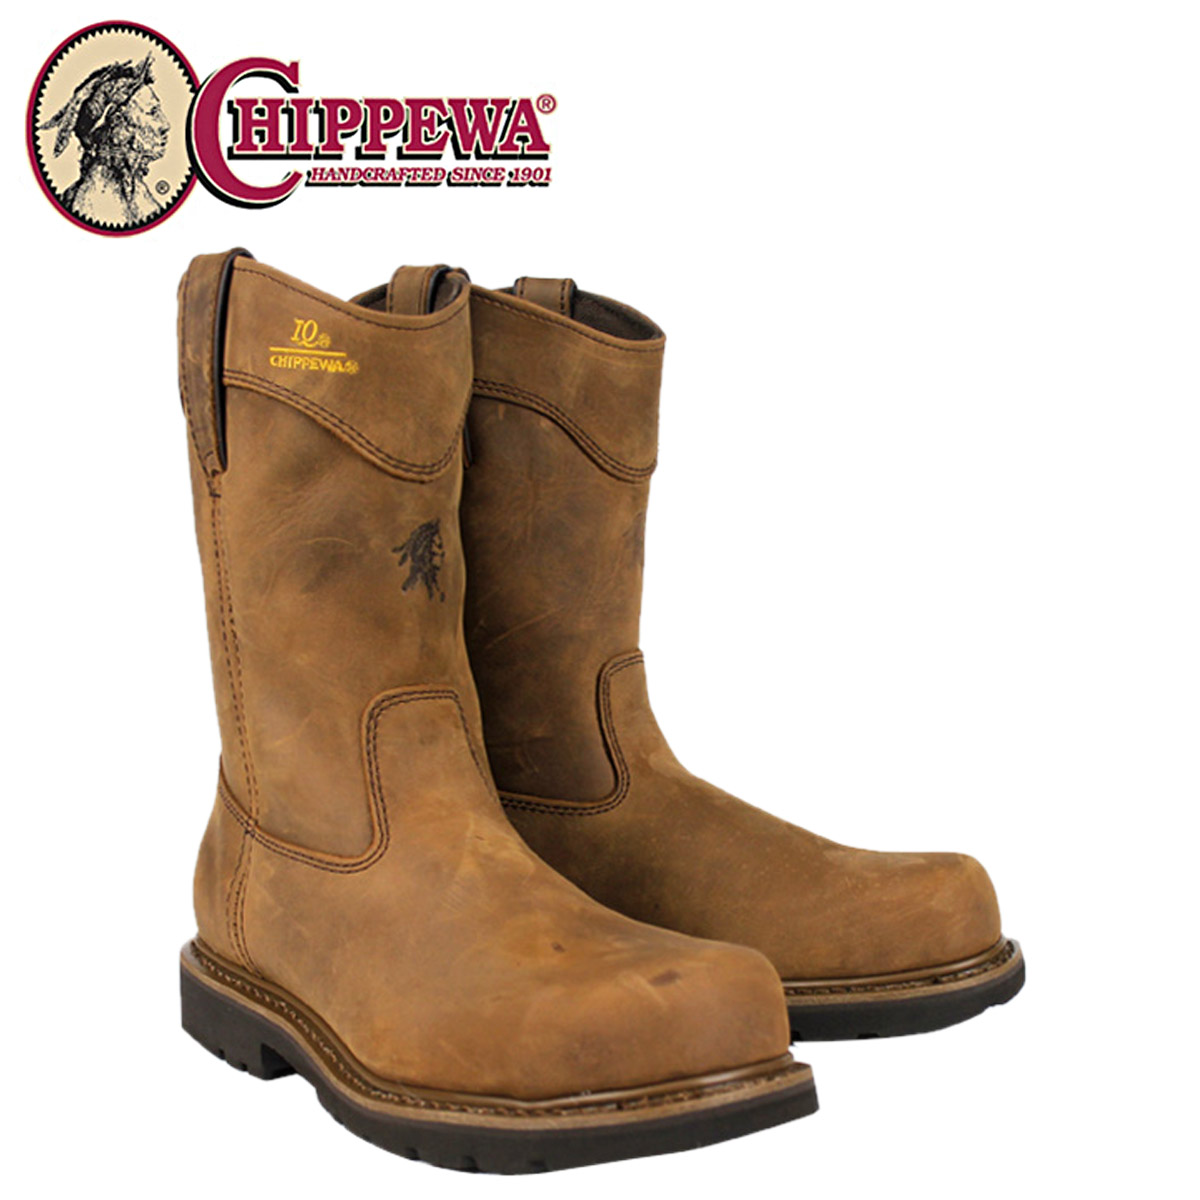 a21c54cfc36 [SOLD OUT]-Chippewa CHIPPEWA 10 inch work boots [heavy dirty] 55035 10 inch  TOUGH BARK STEEL TOE WELLINGTON IQ 2 wise LEATHER mens HEAVY DUTY ...